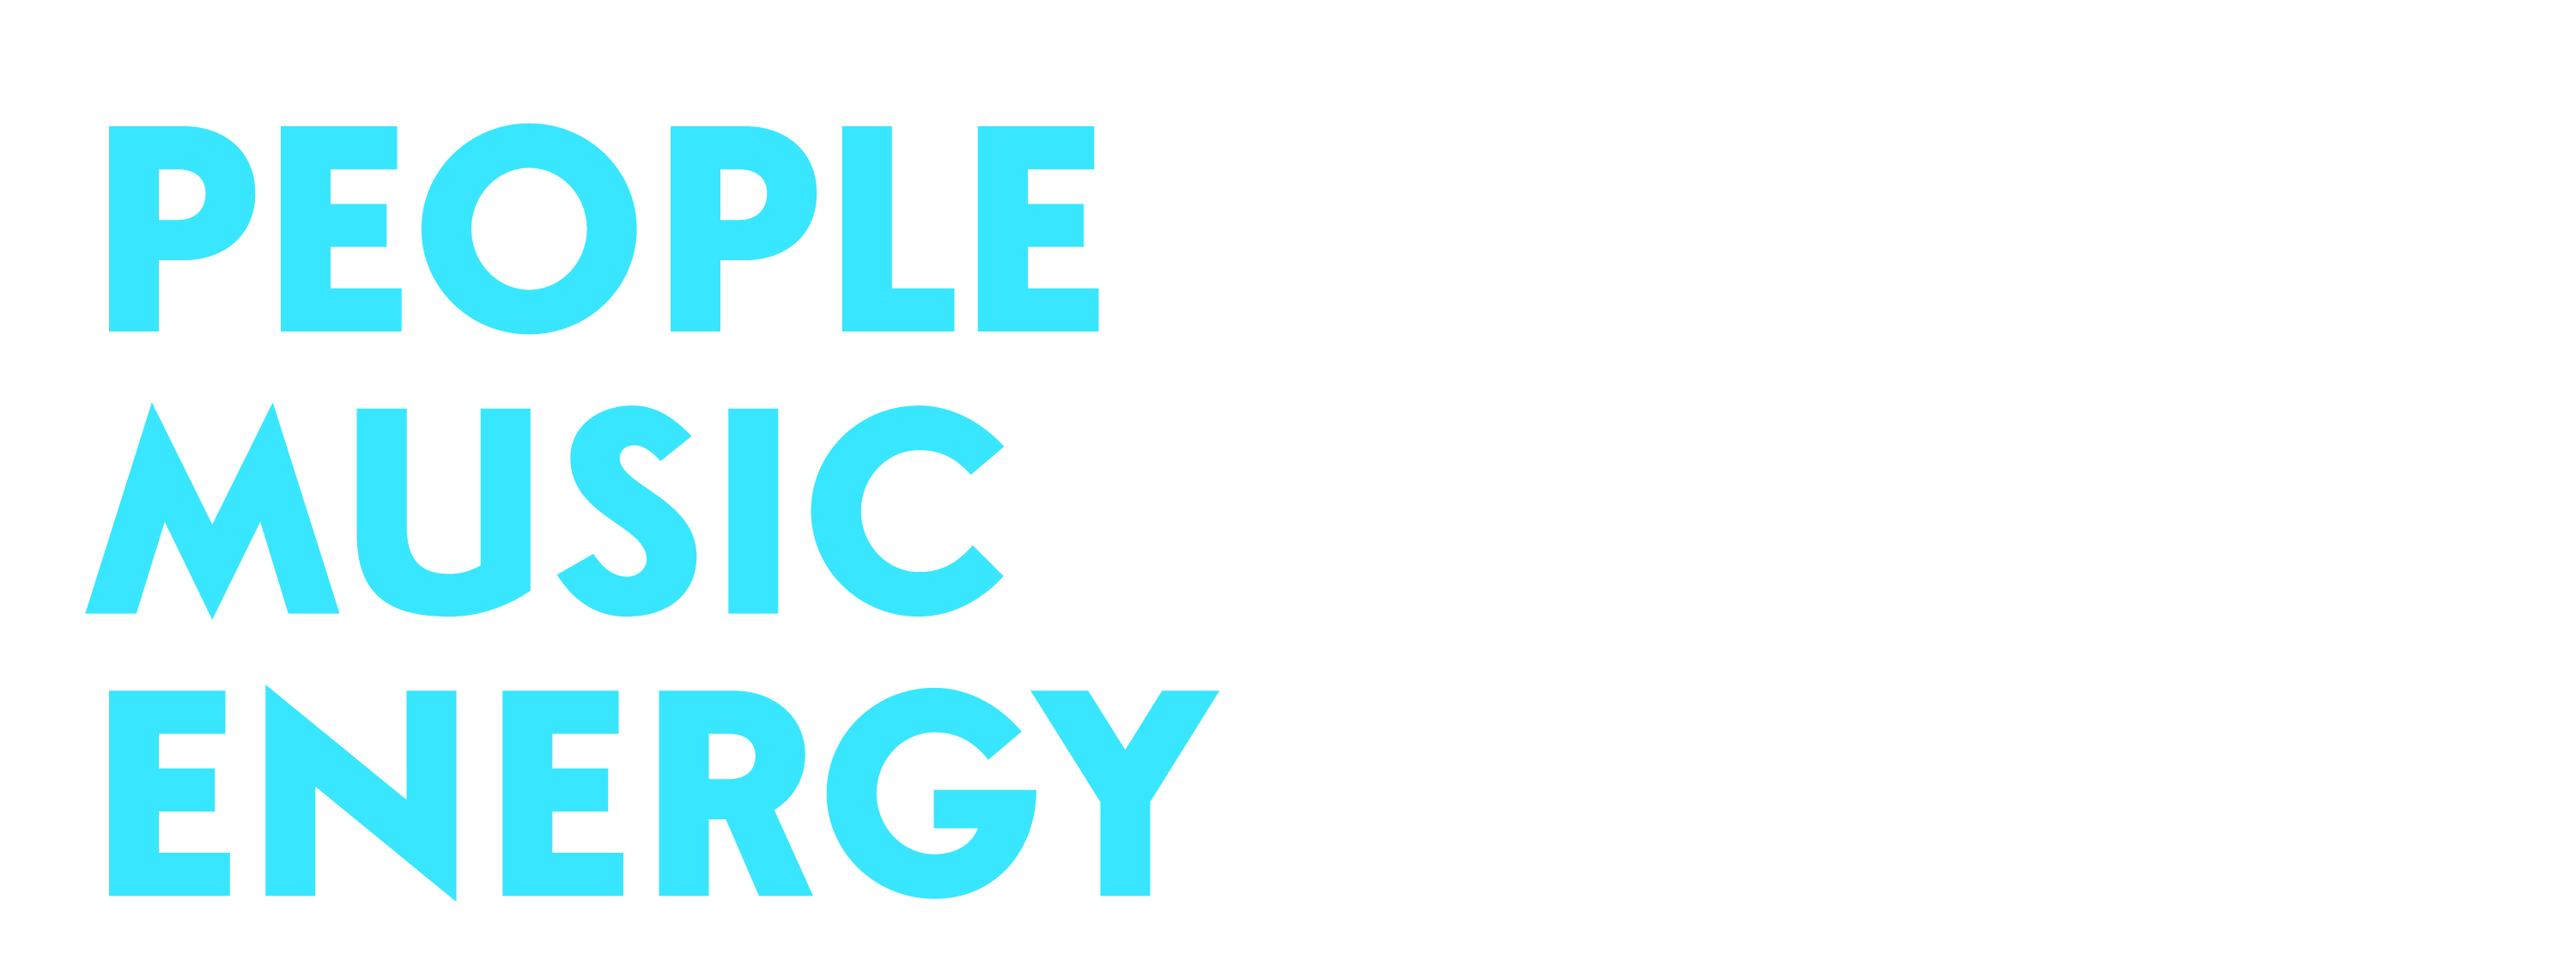 People Music Energy